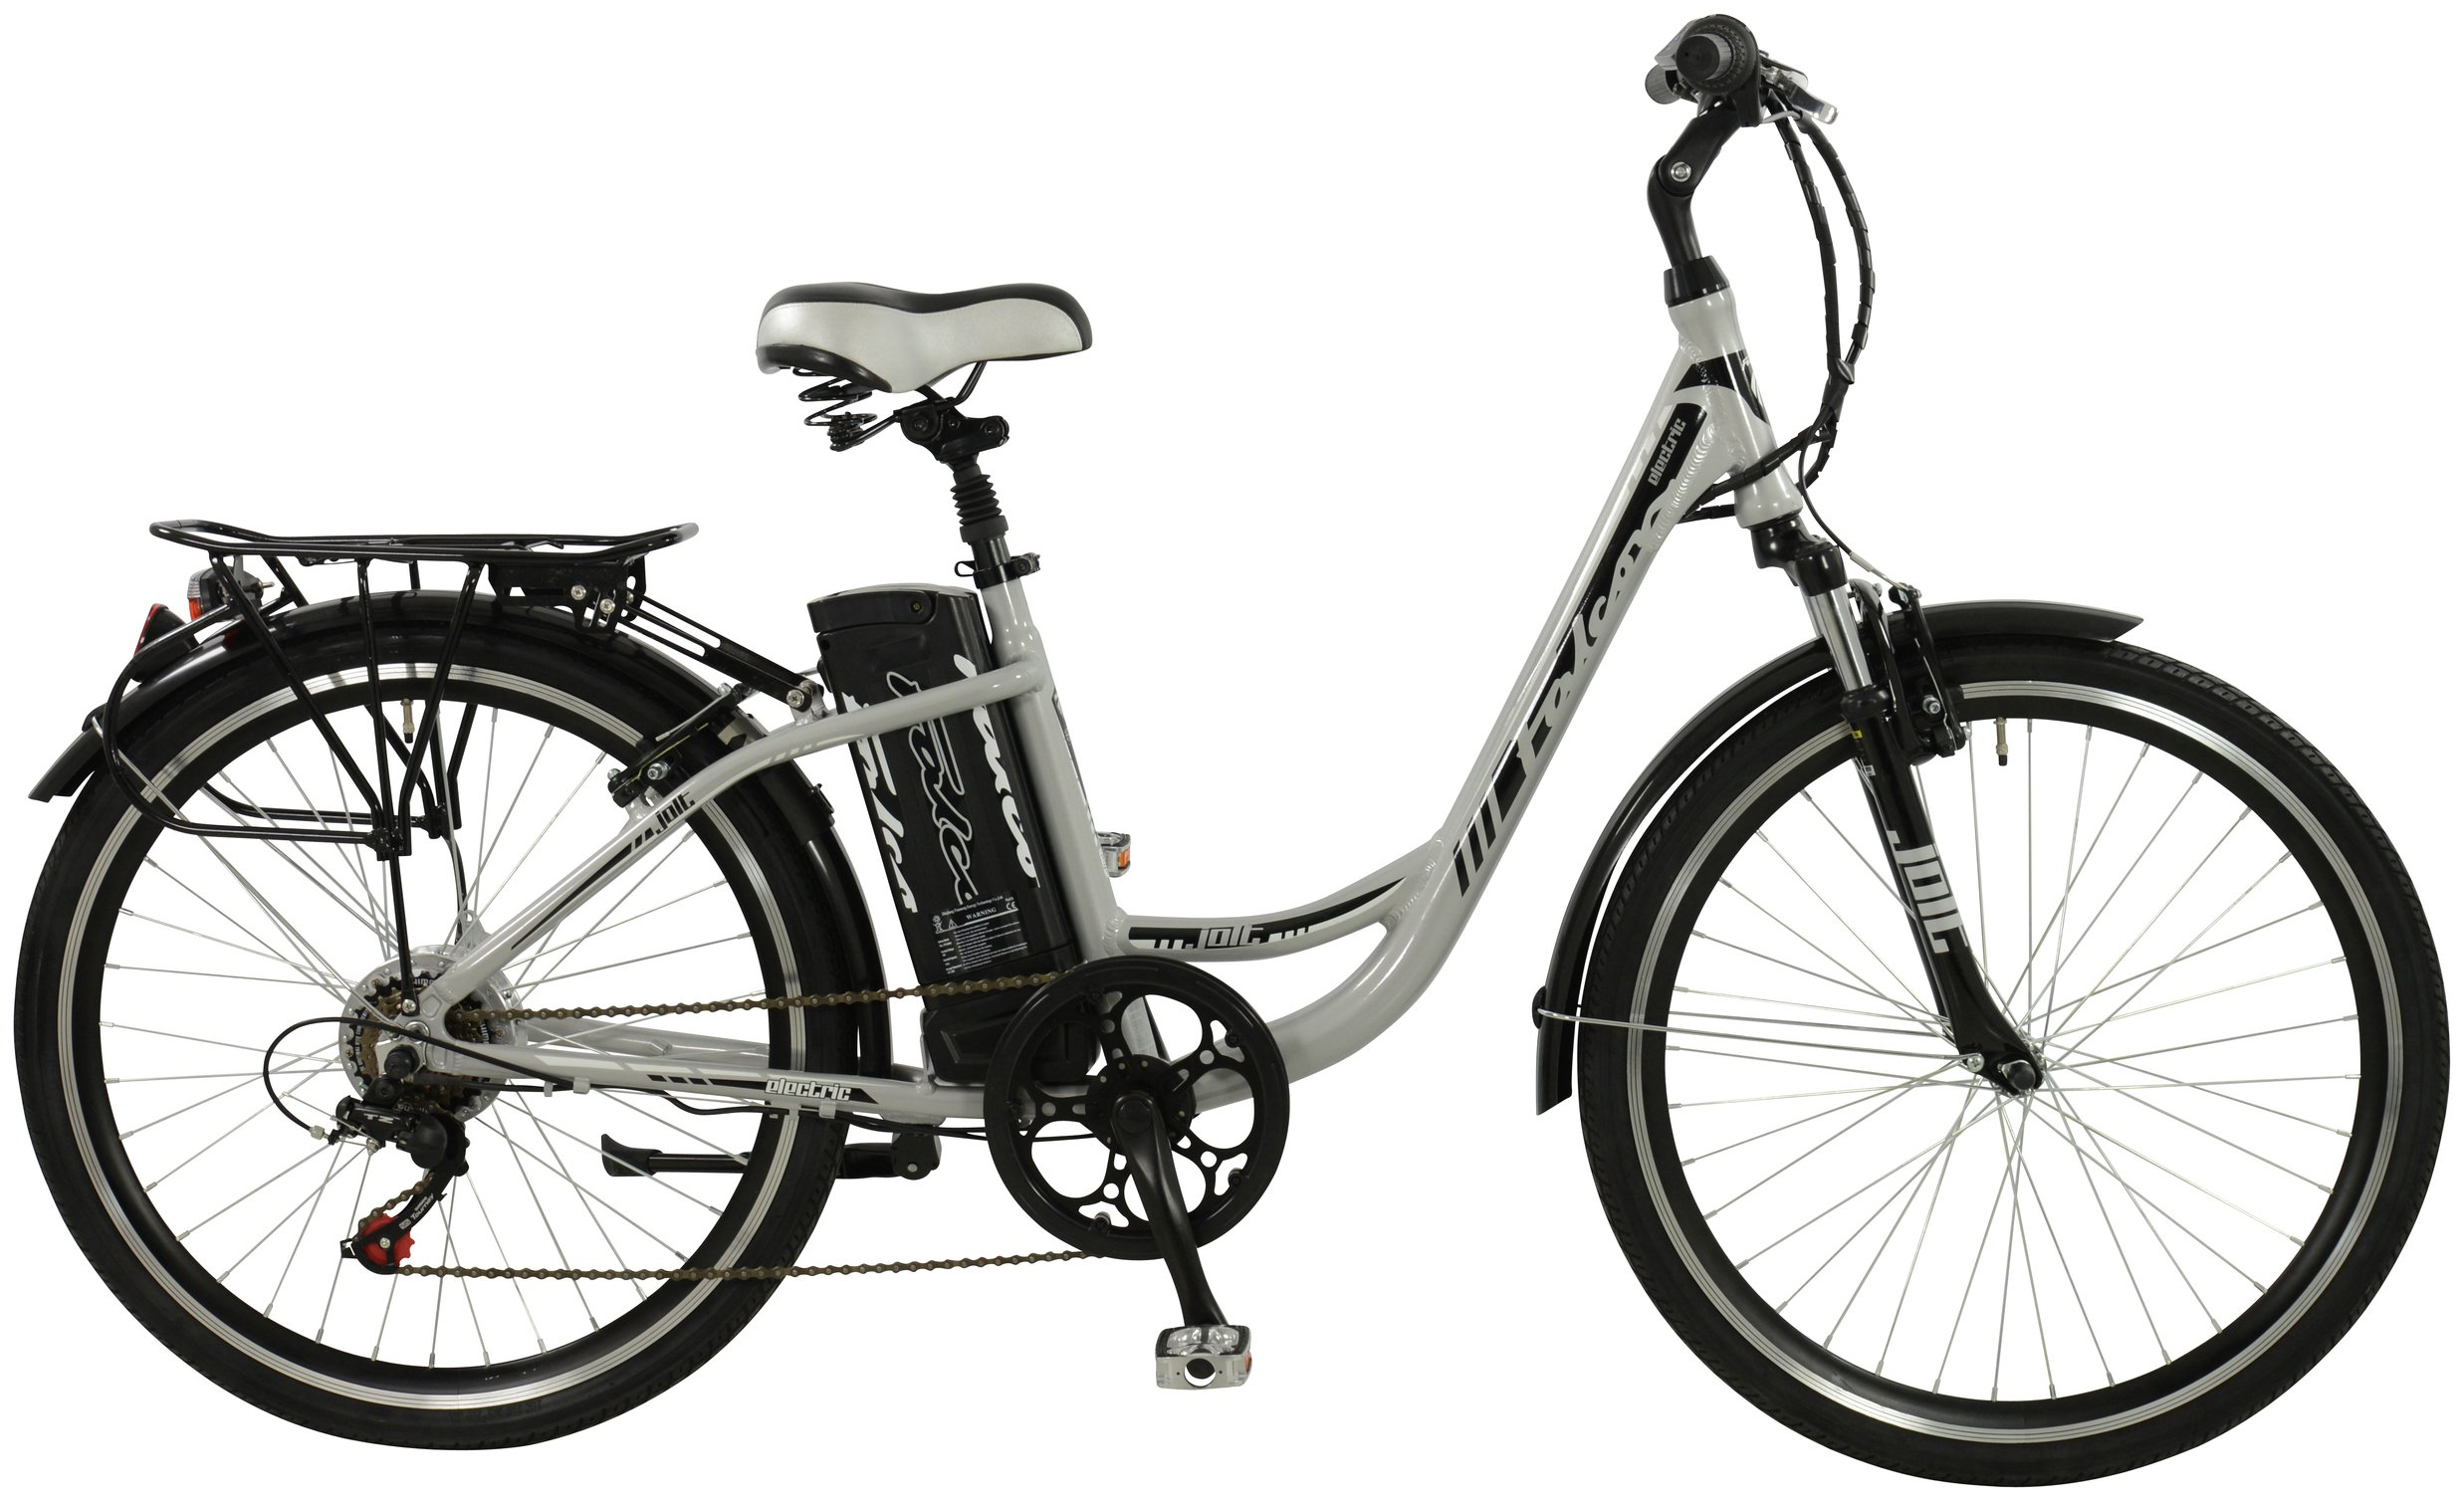 Image of Falcon Jolt Woman's Comfort Electric Bike